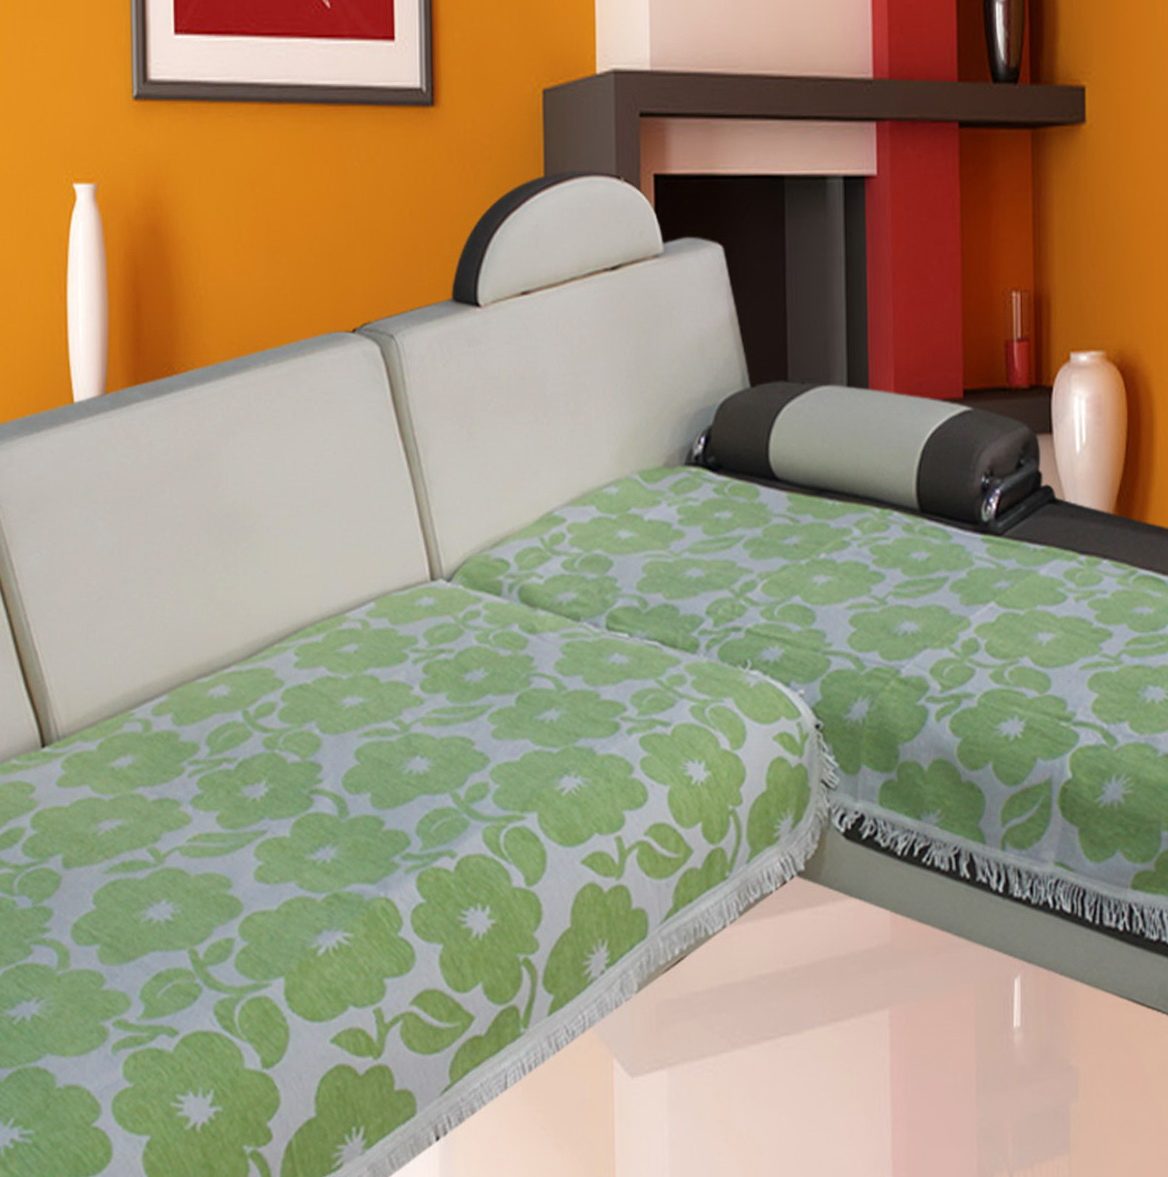 Individual Couch Cushion Covers Home Design Ideas